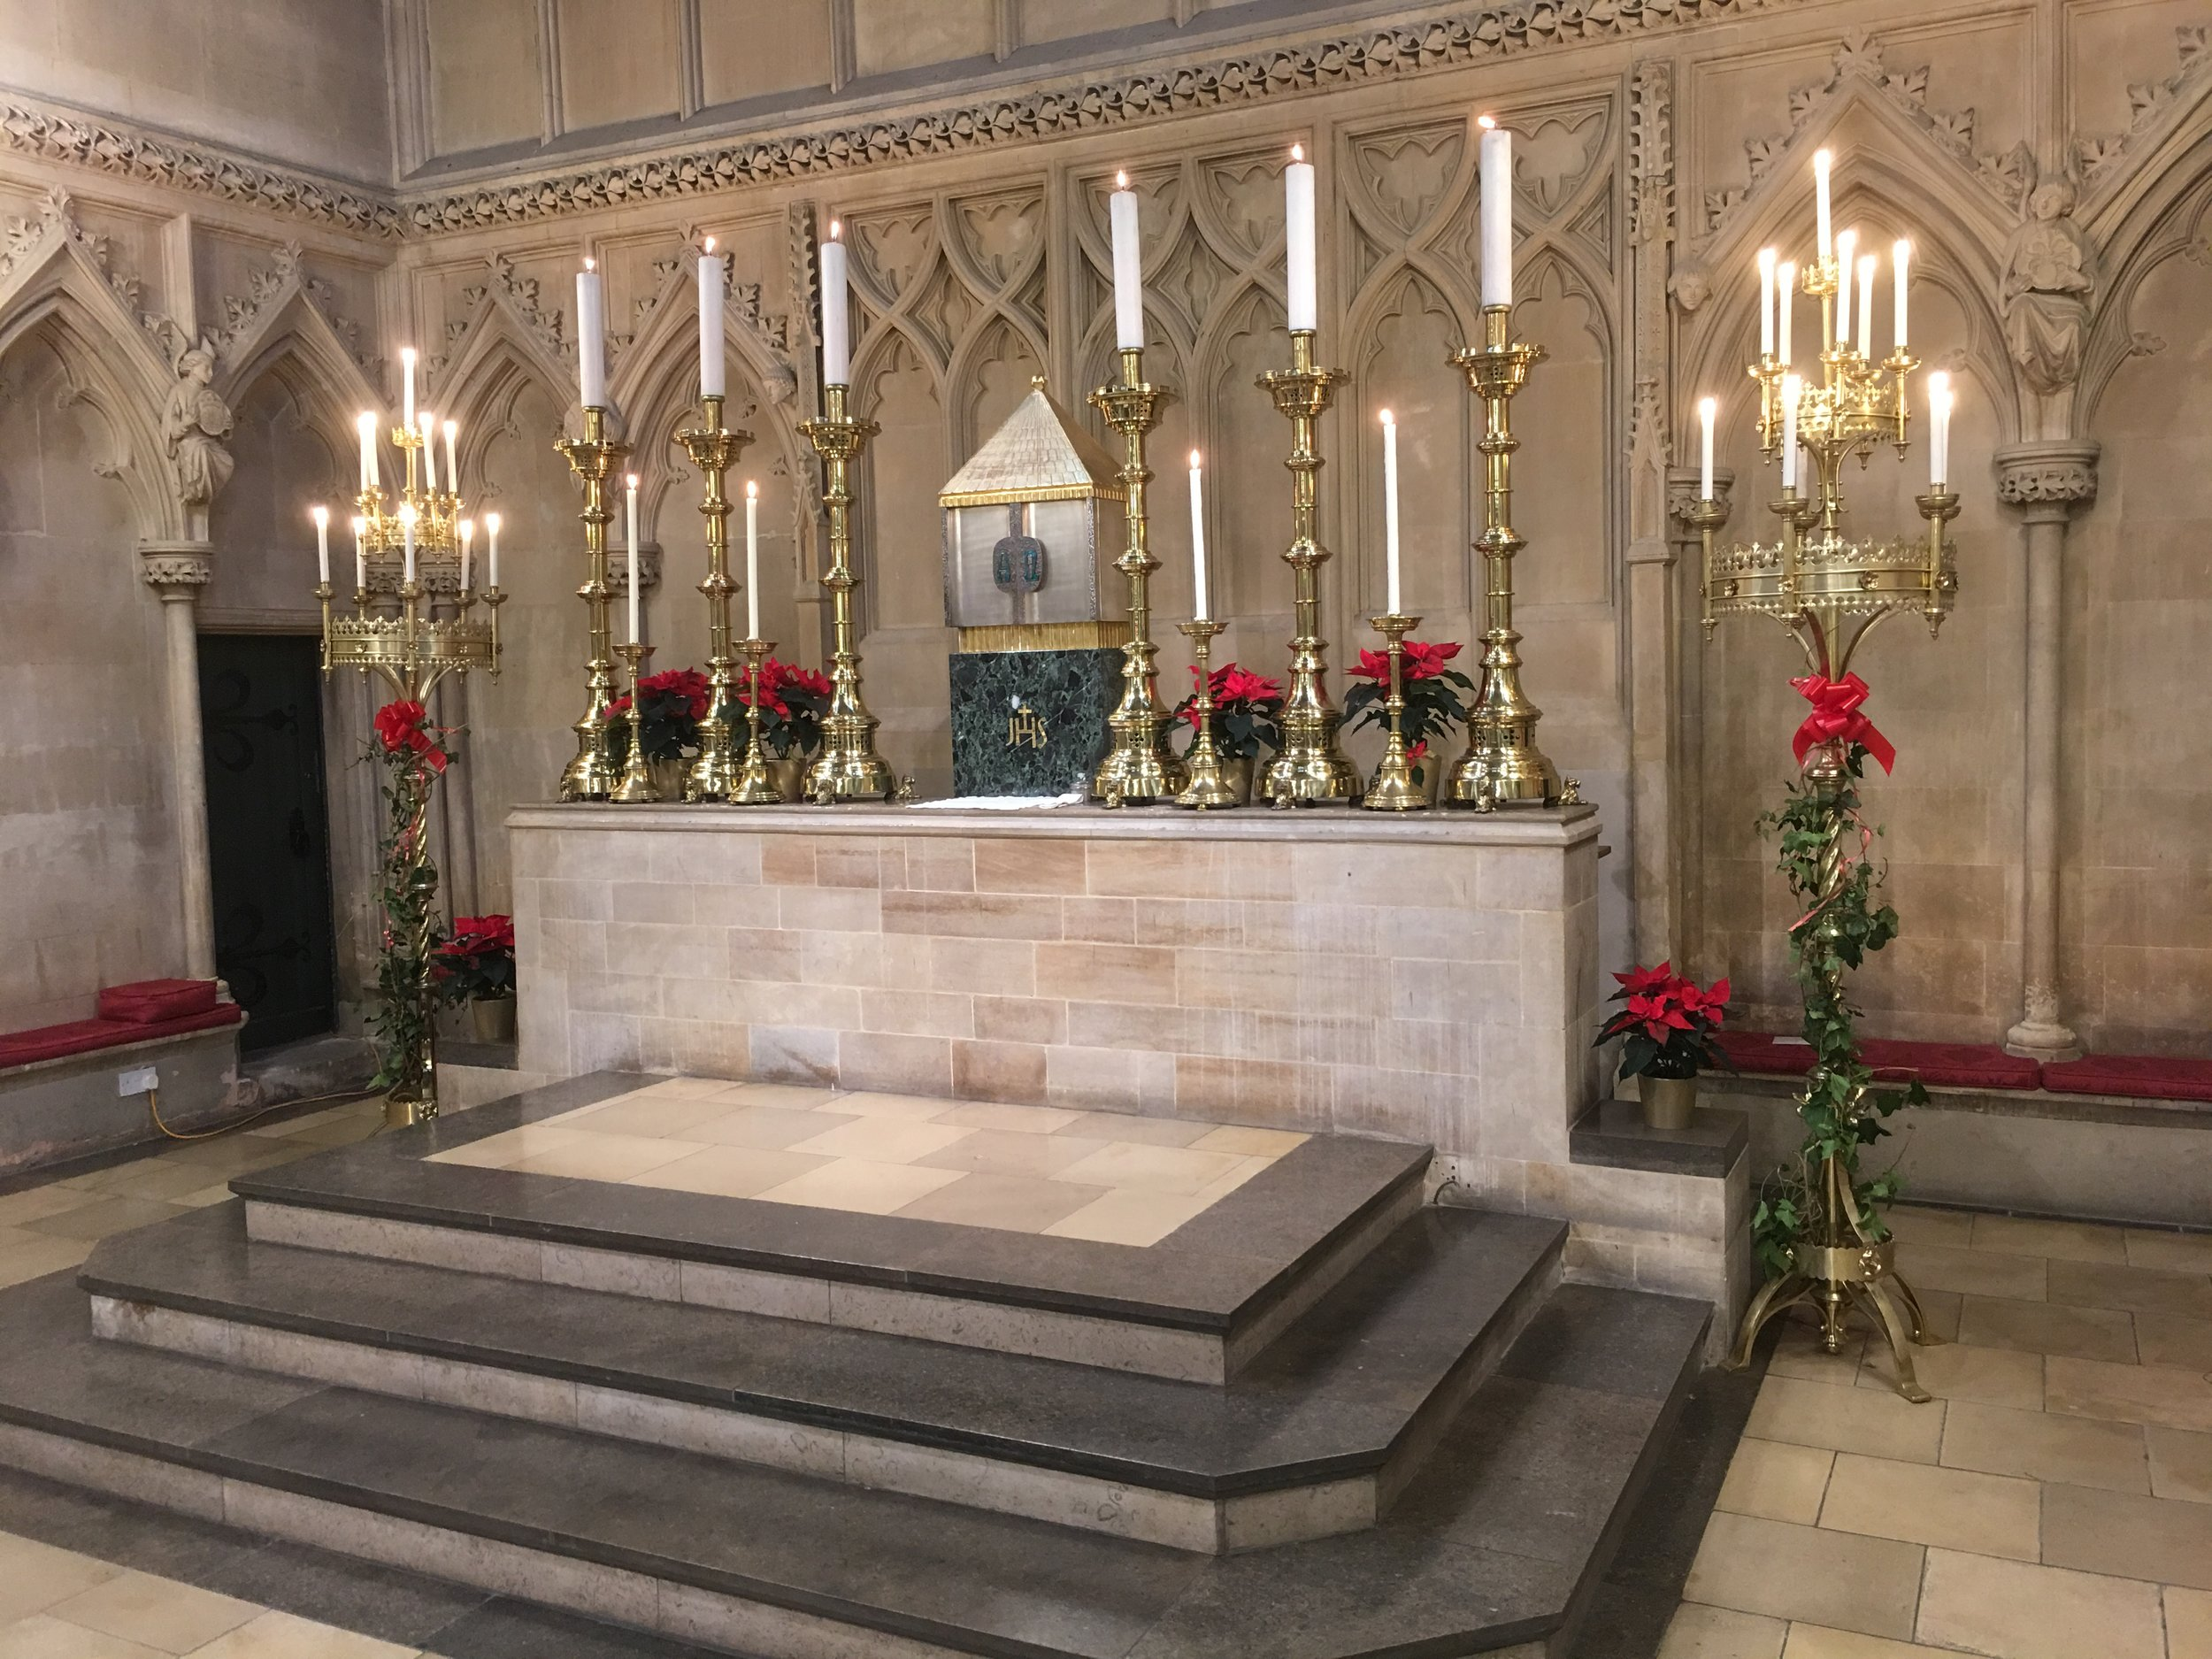 The High Altar at Christmas